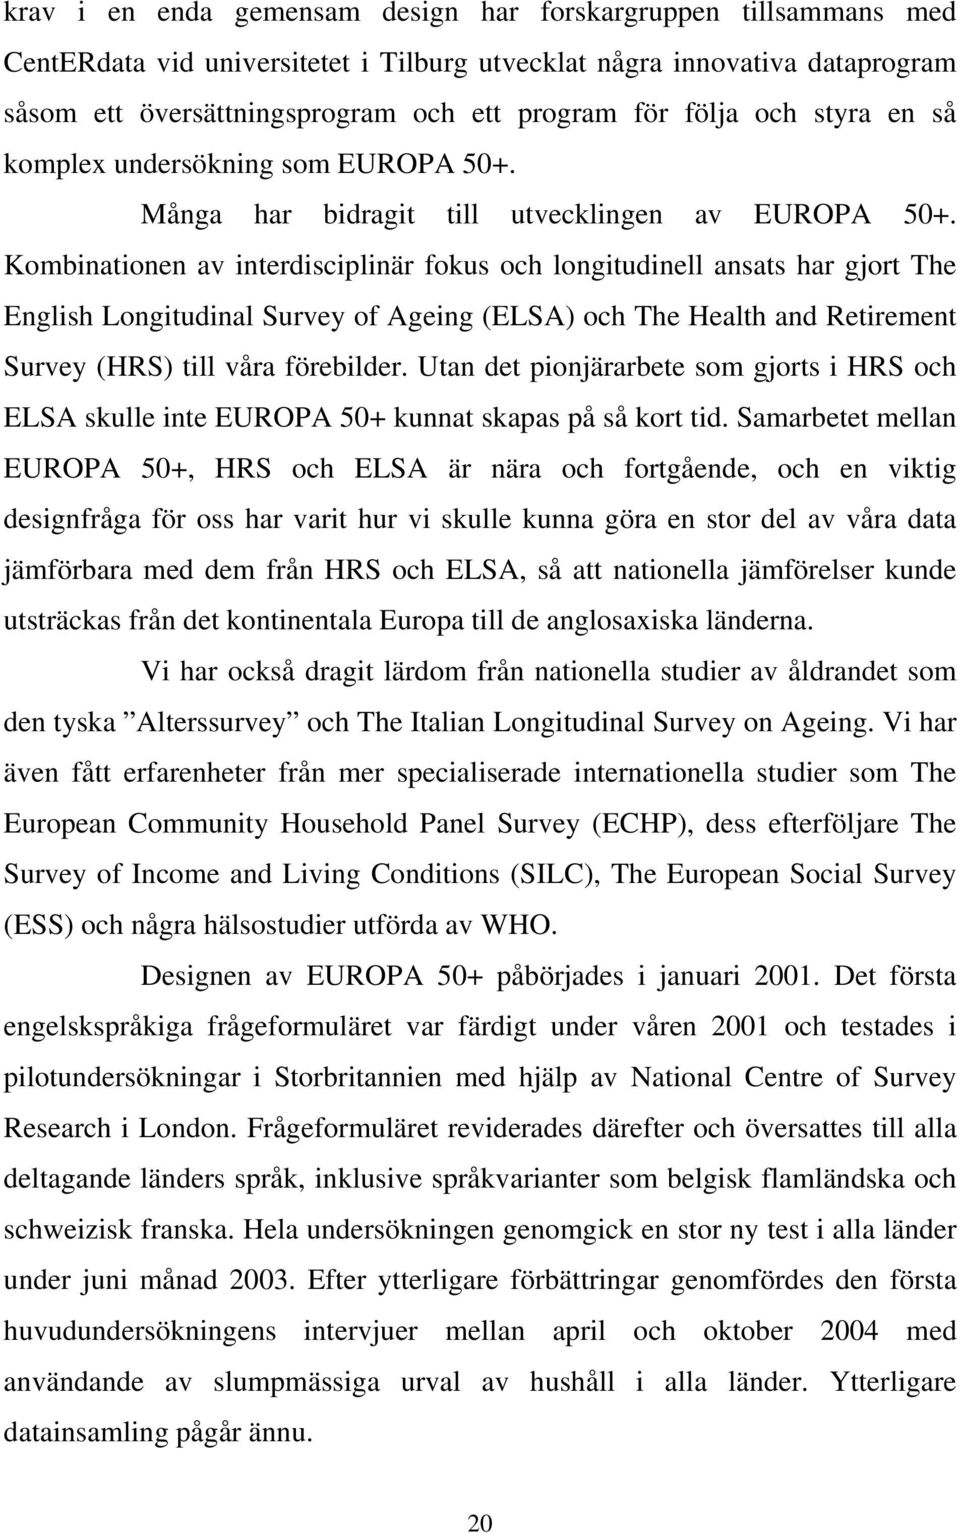 Kombinationen av interdisciplinär fokus och longitudinell ansats har gjort The English Longitudinal Survey of Ageing (ELSA) och The Health and Retirement Survey (HRS) till våra förebilder.